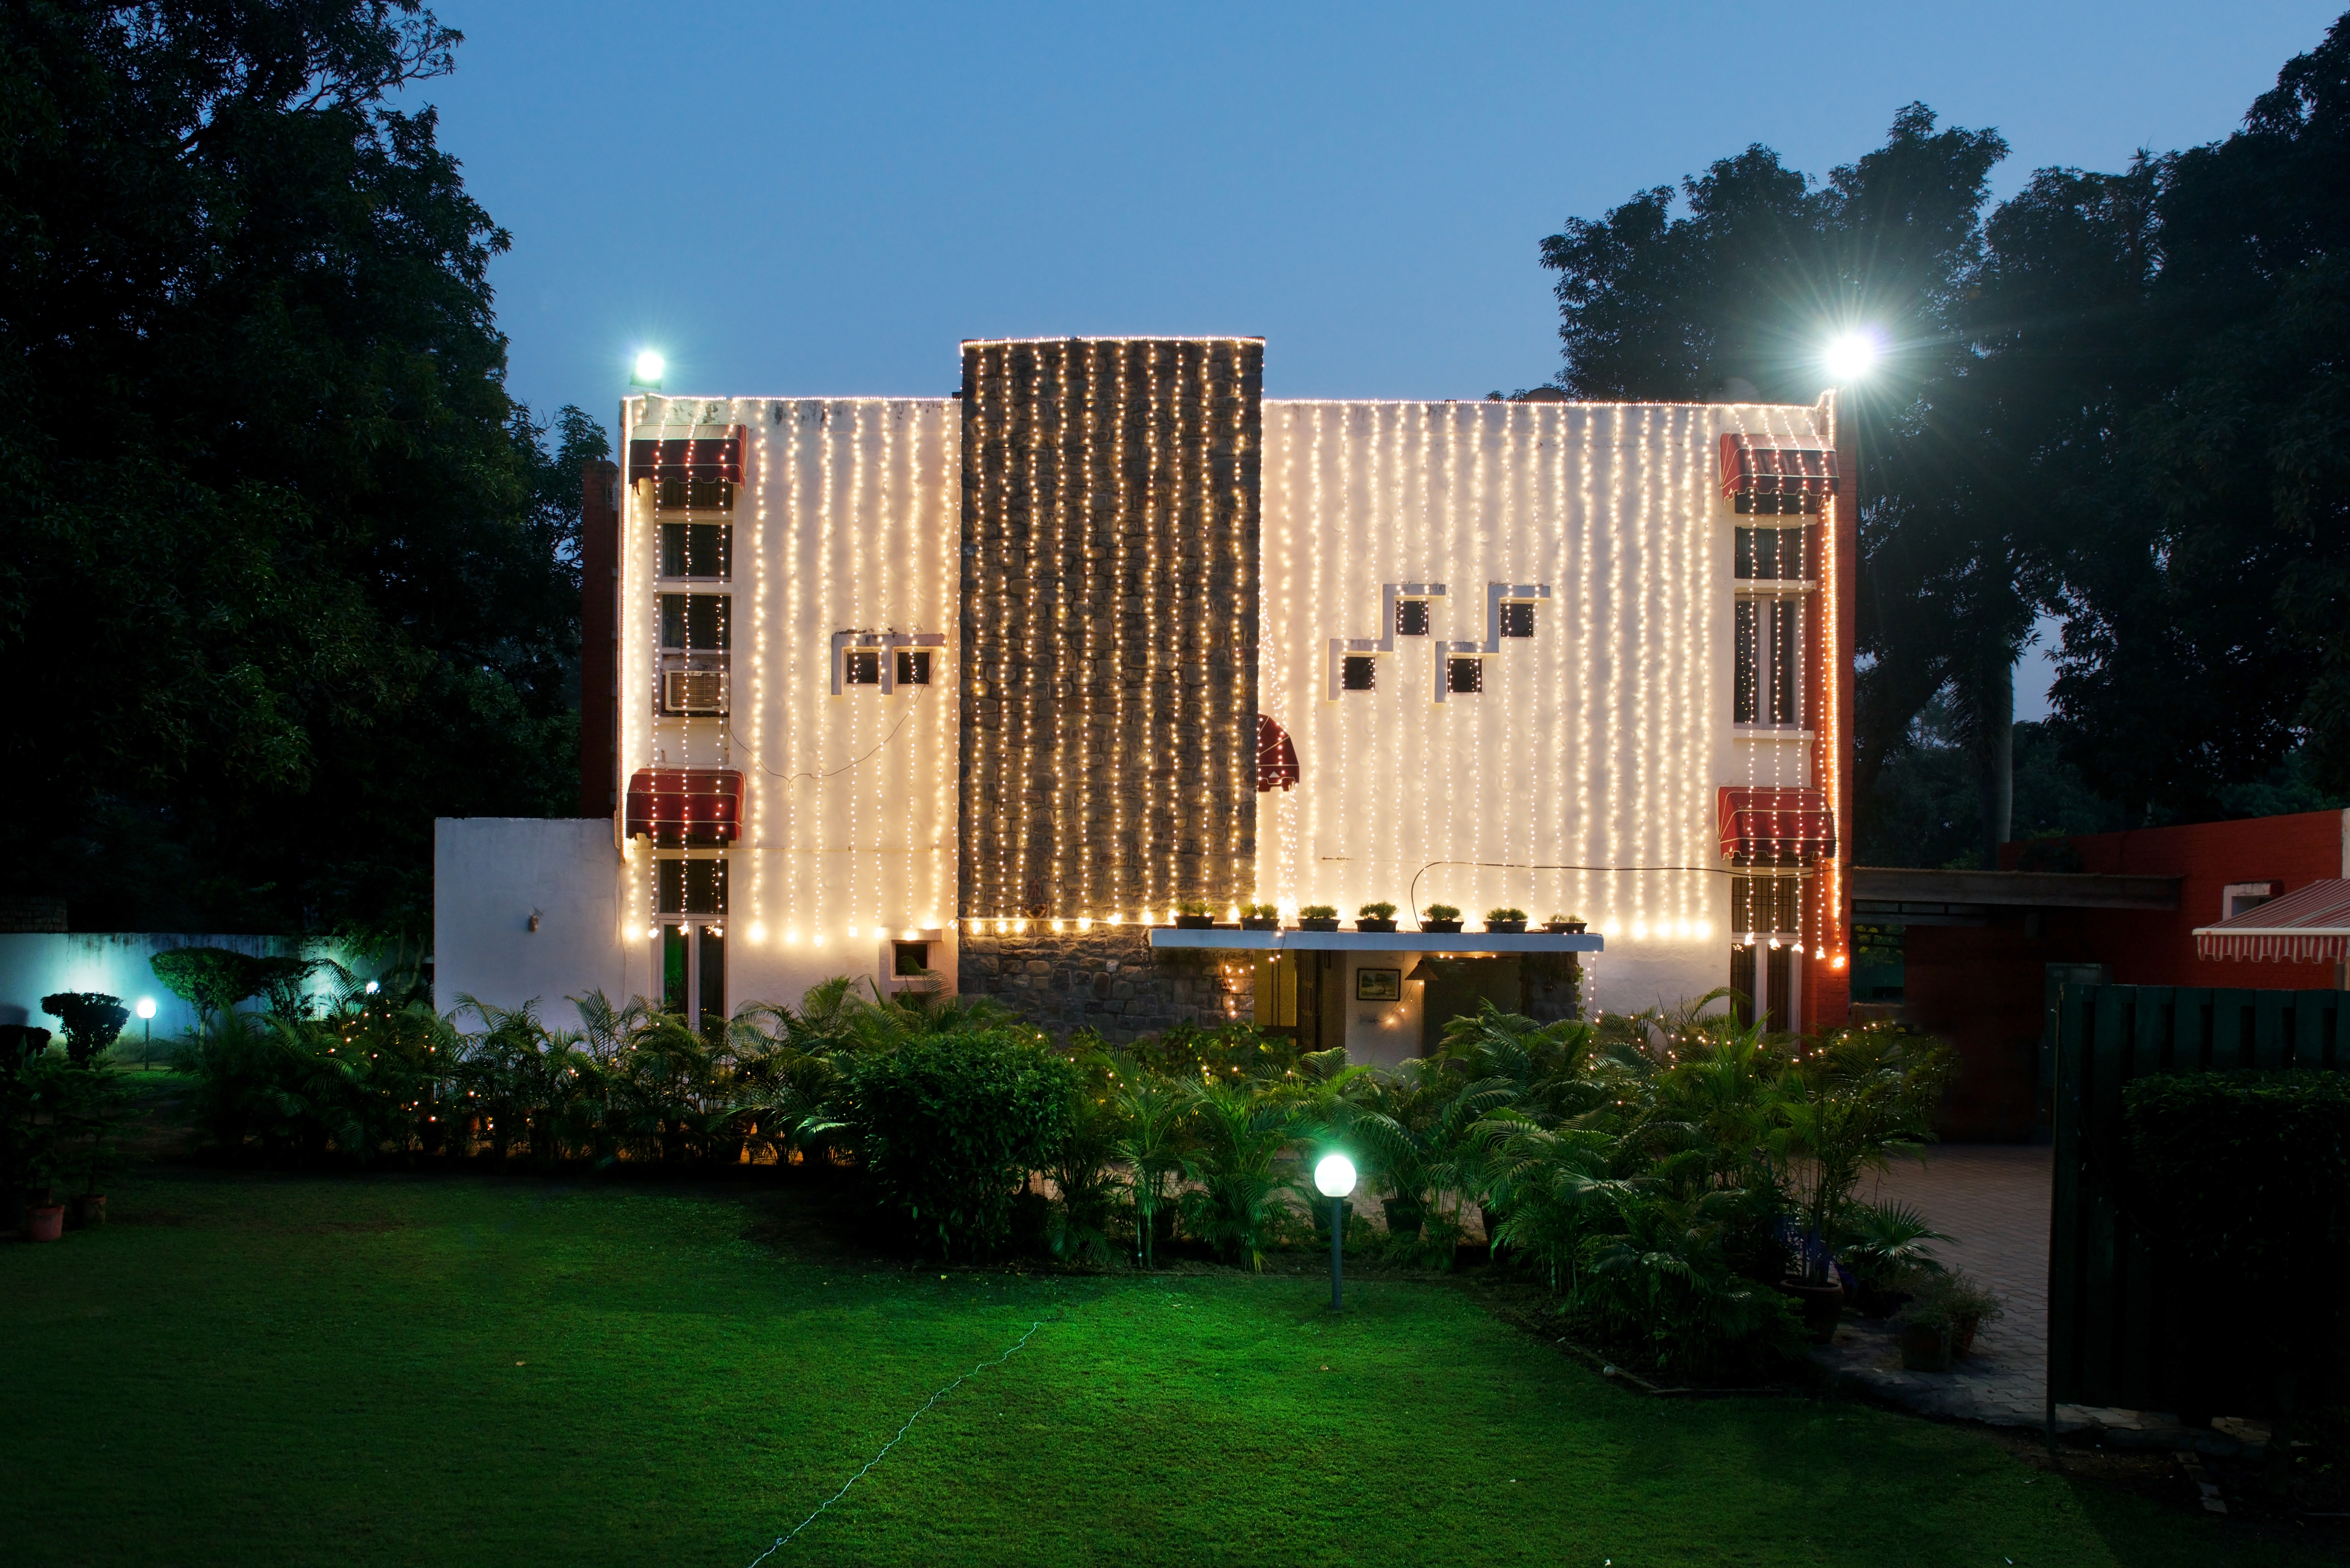 Le Corbusier's utopian city Chandigarh, and its faded glory, captured in photos